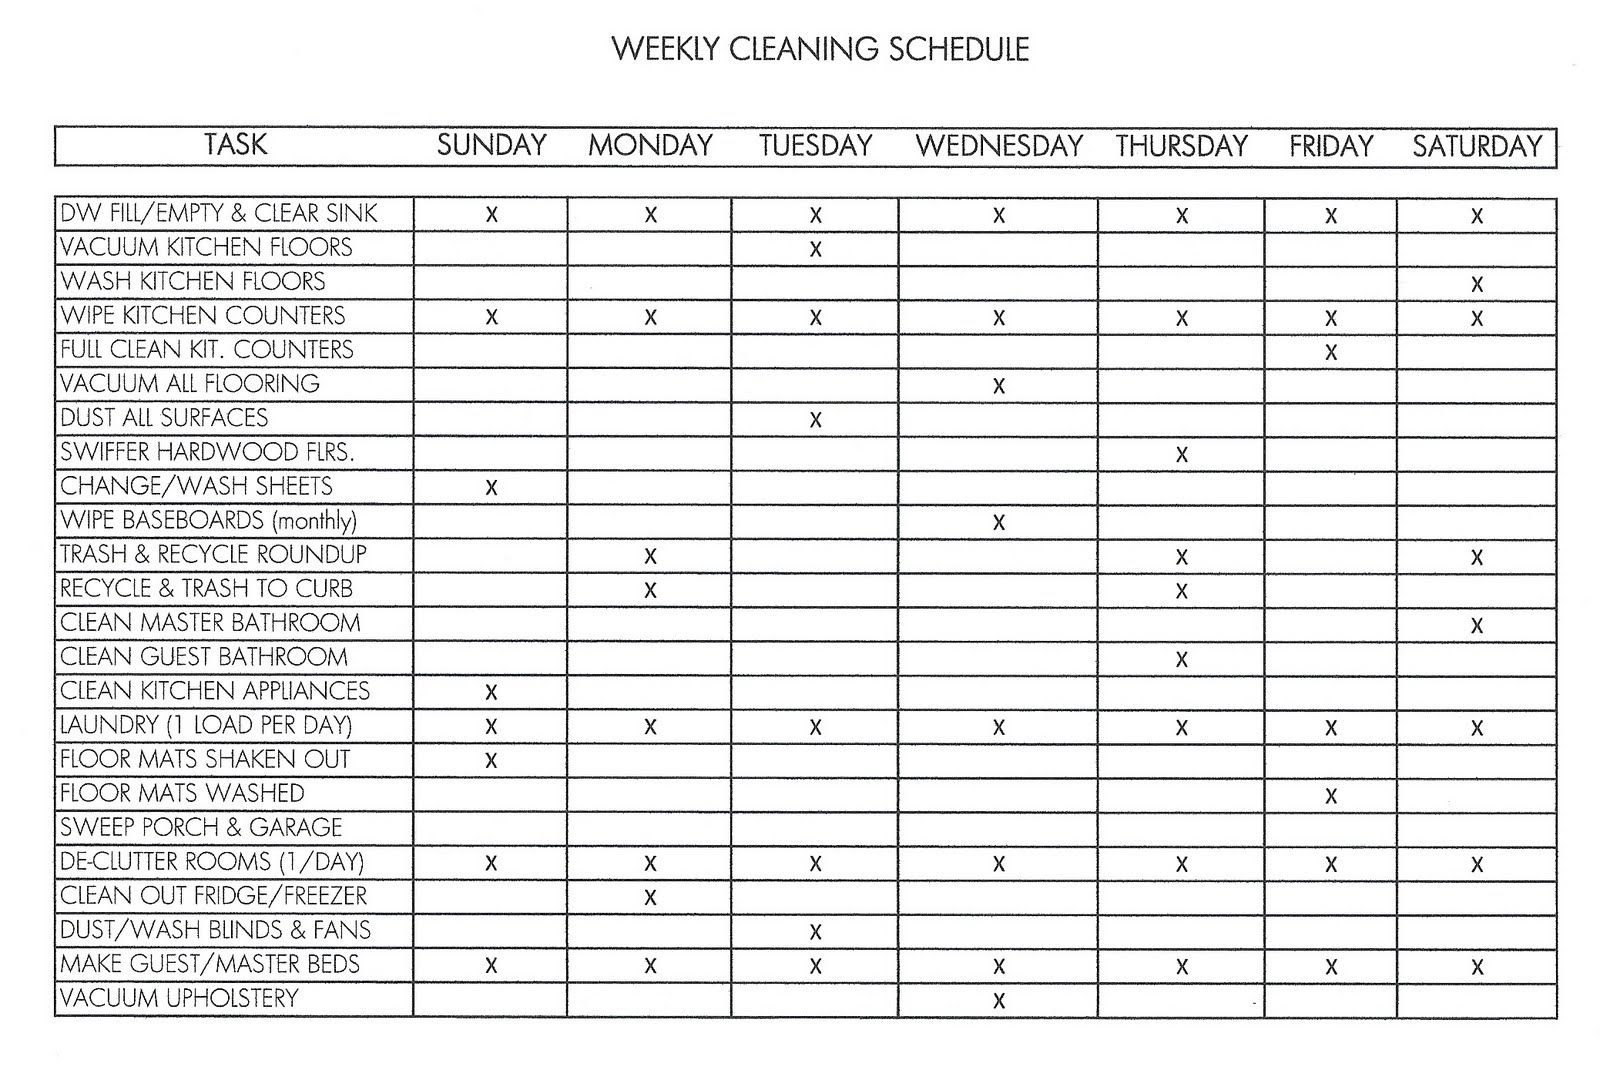 housework schedules